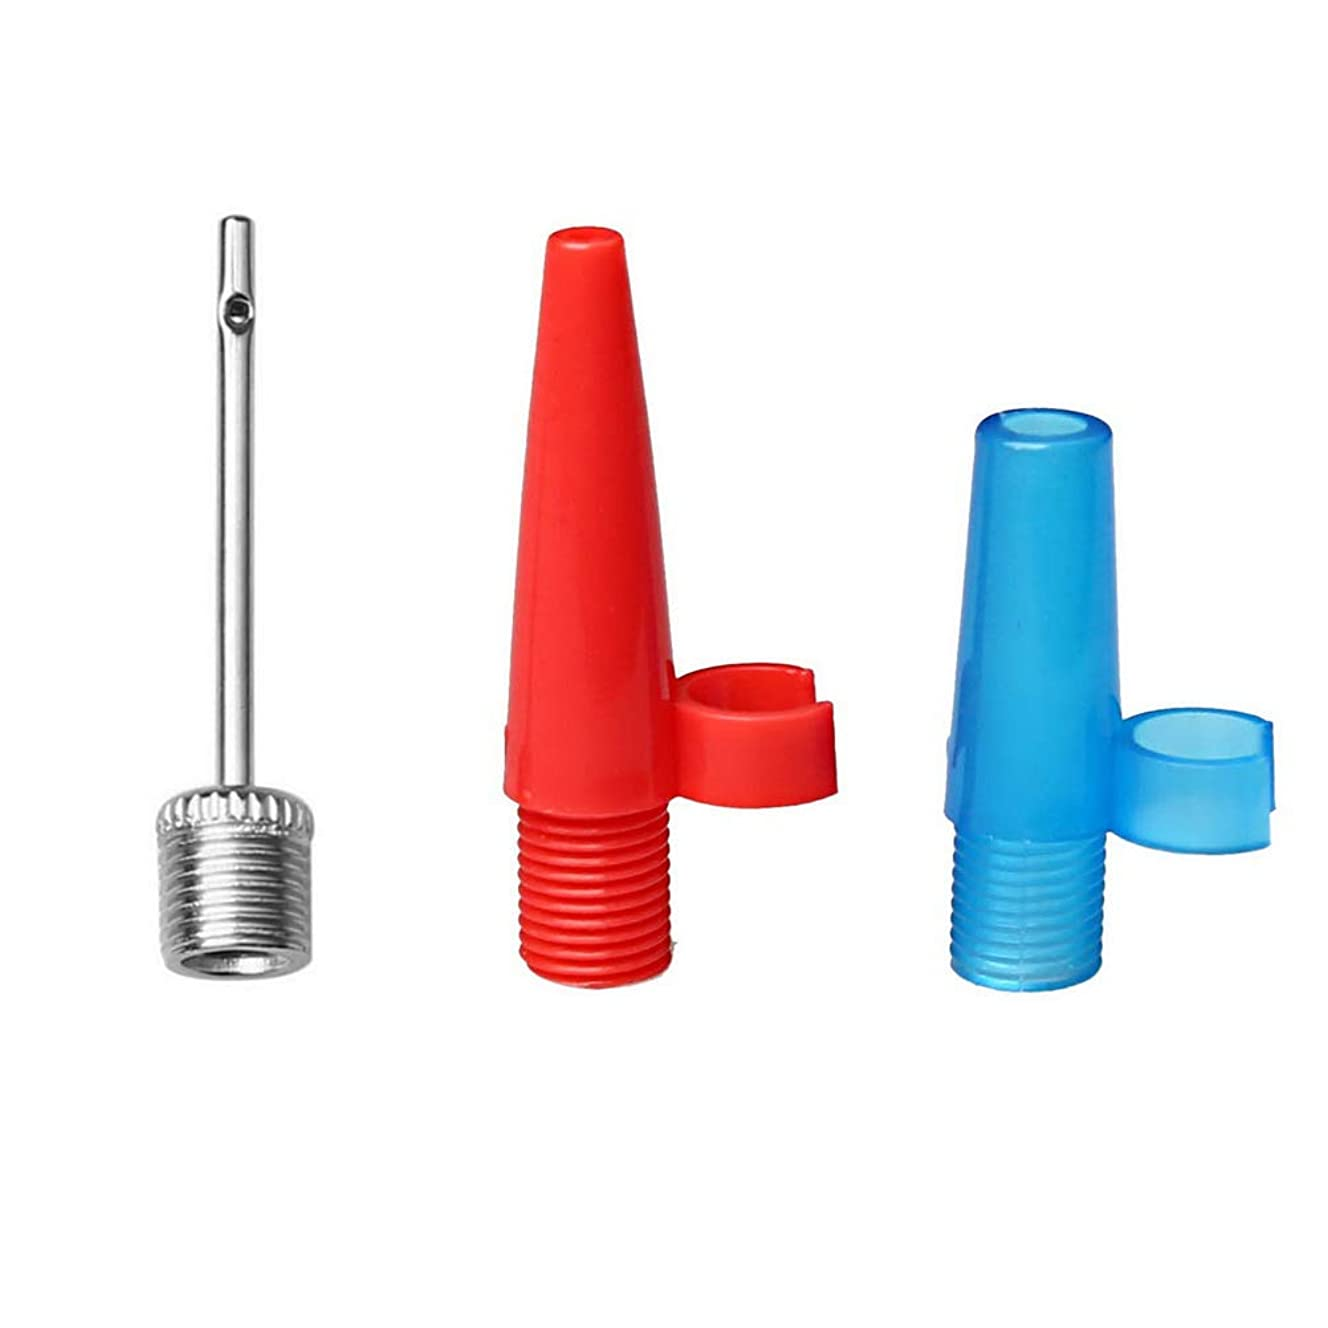 EUBags Ball Pump Needle Kit Inflator Adapter Nozzle Adapter Kit Used for Inflatable Toys, Balloons, Basketball, Etc